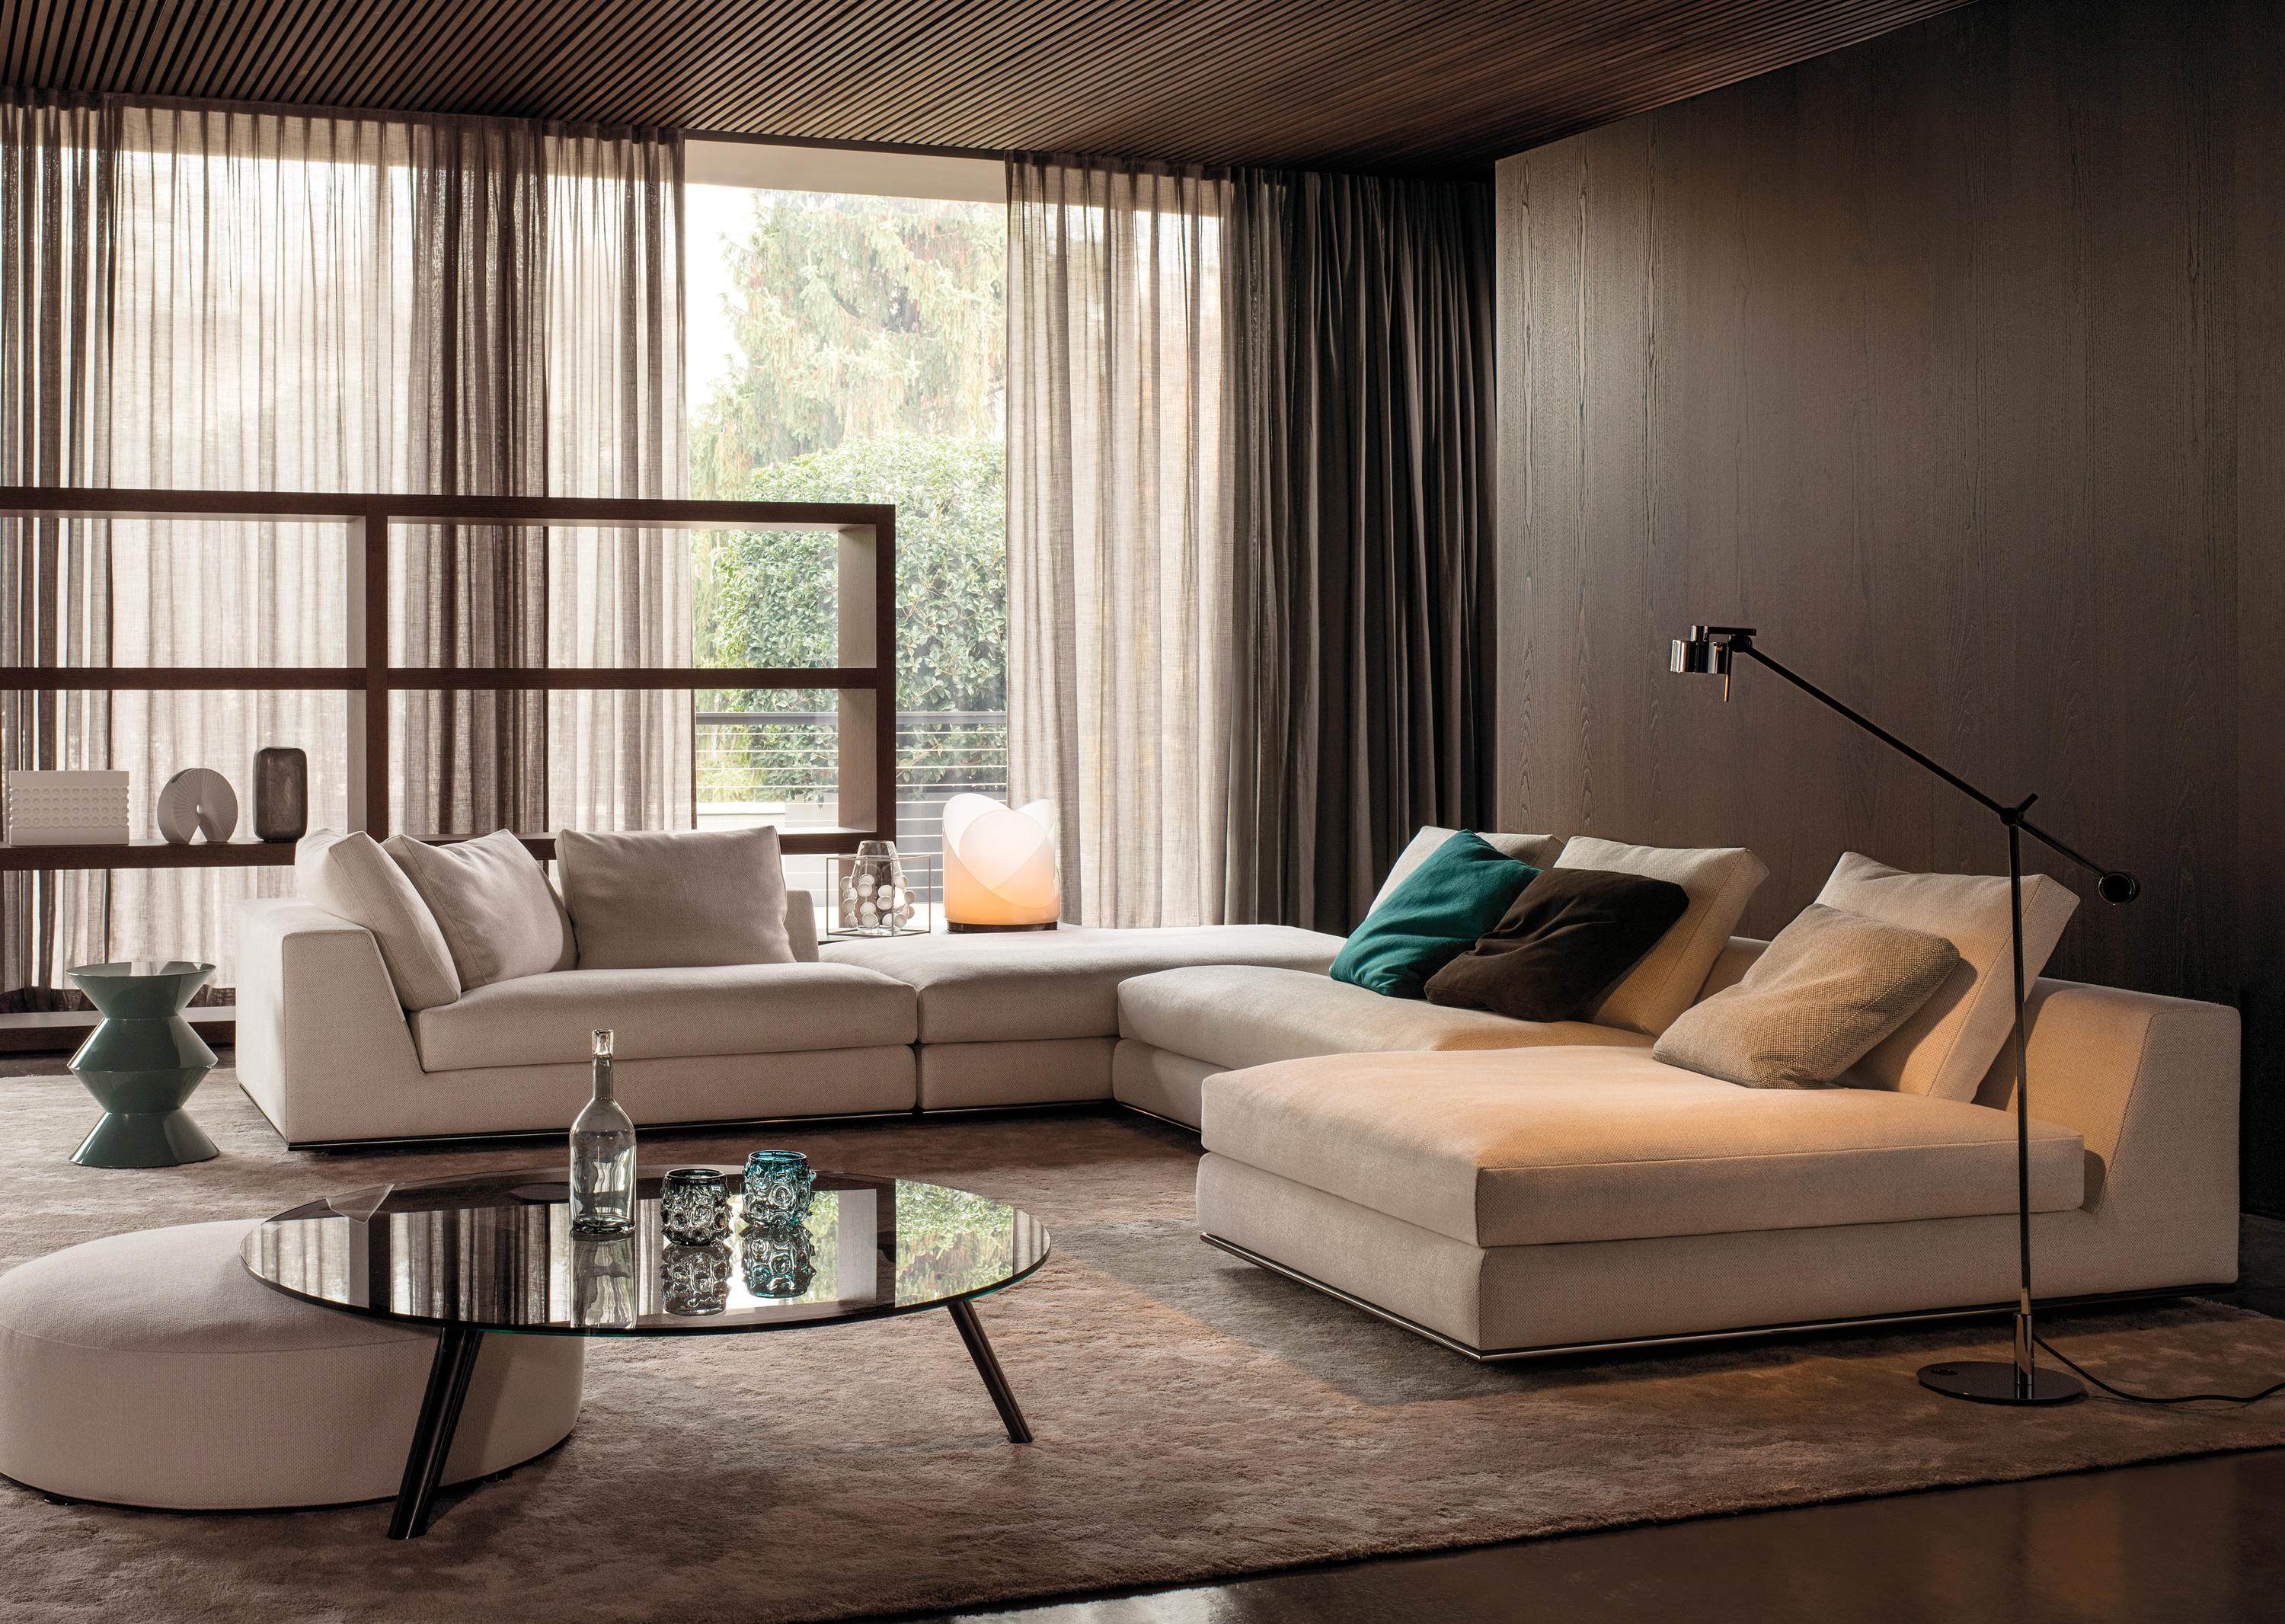 HAMILTON Lounge sofas from Minotti